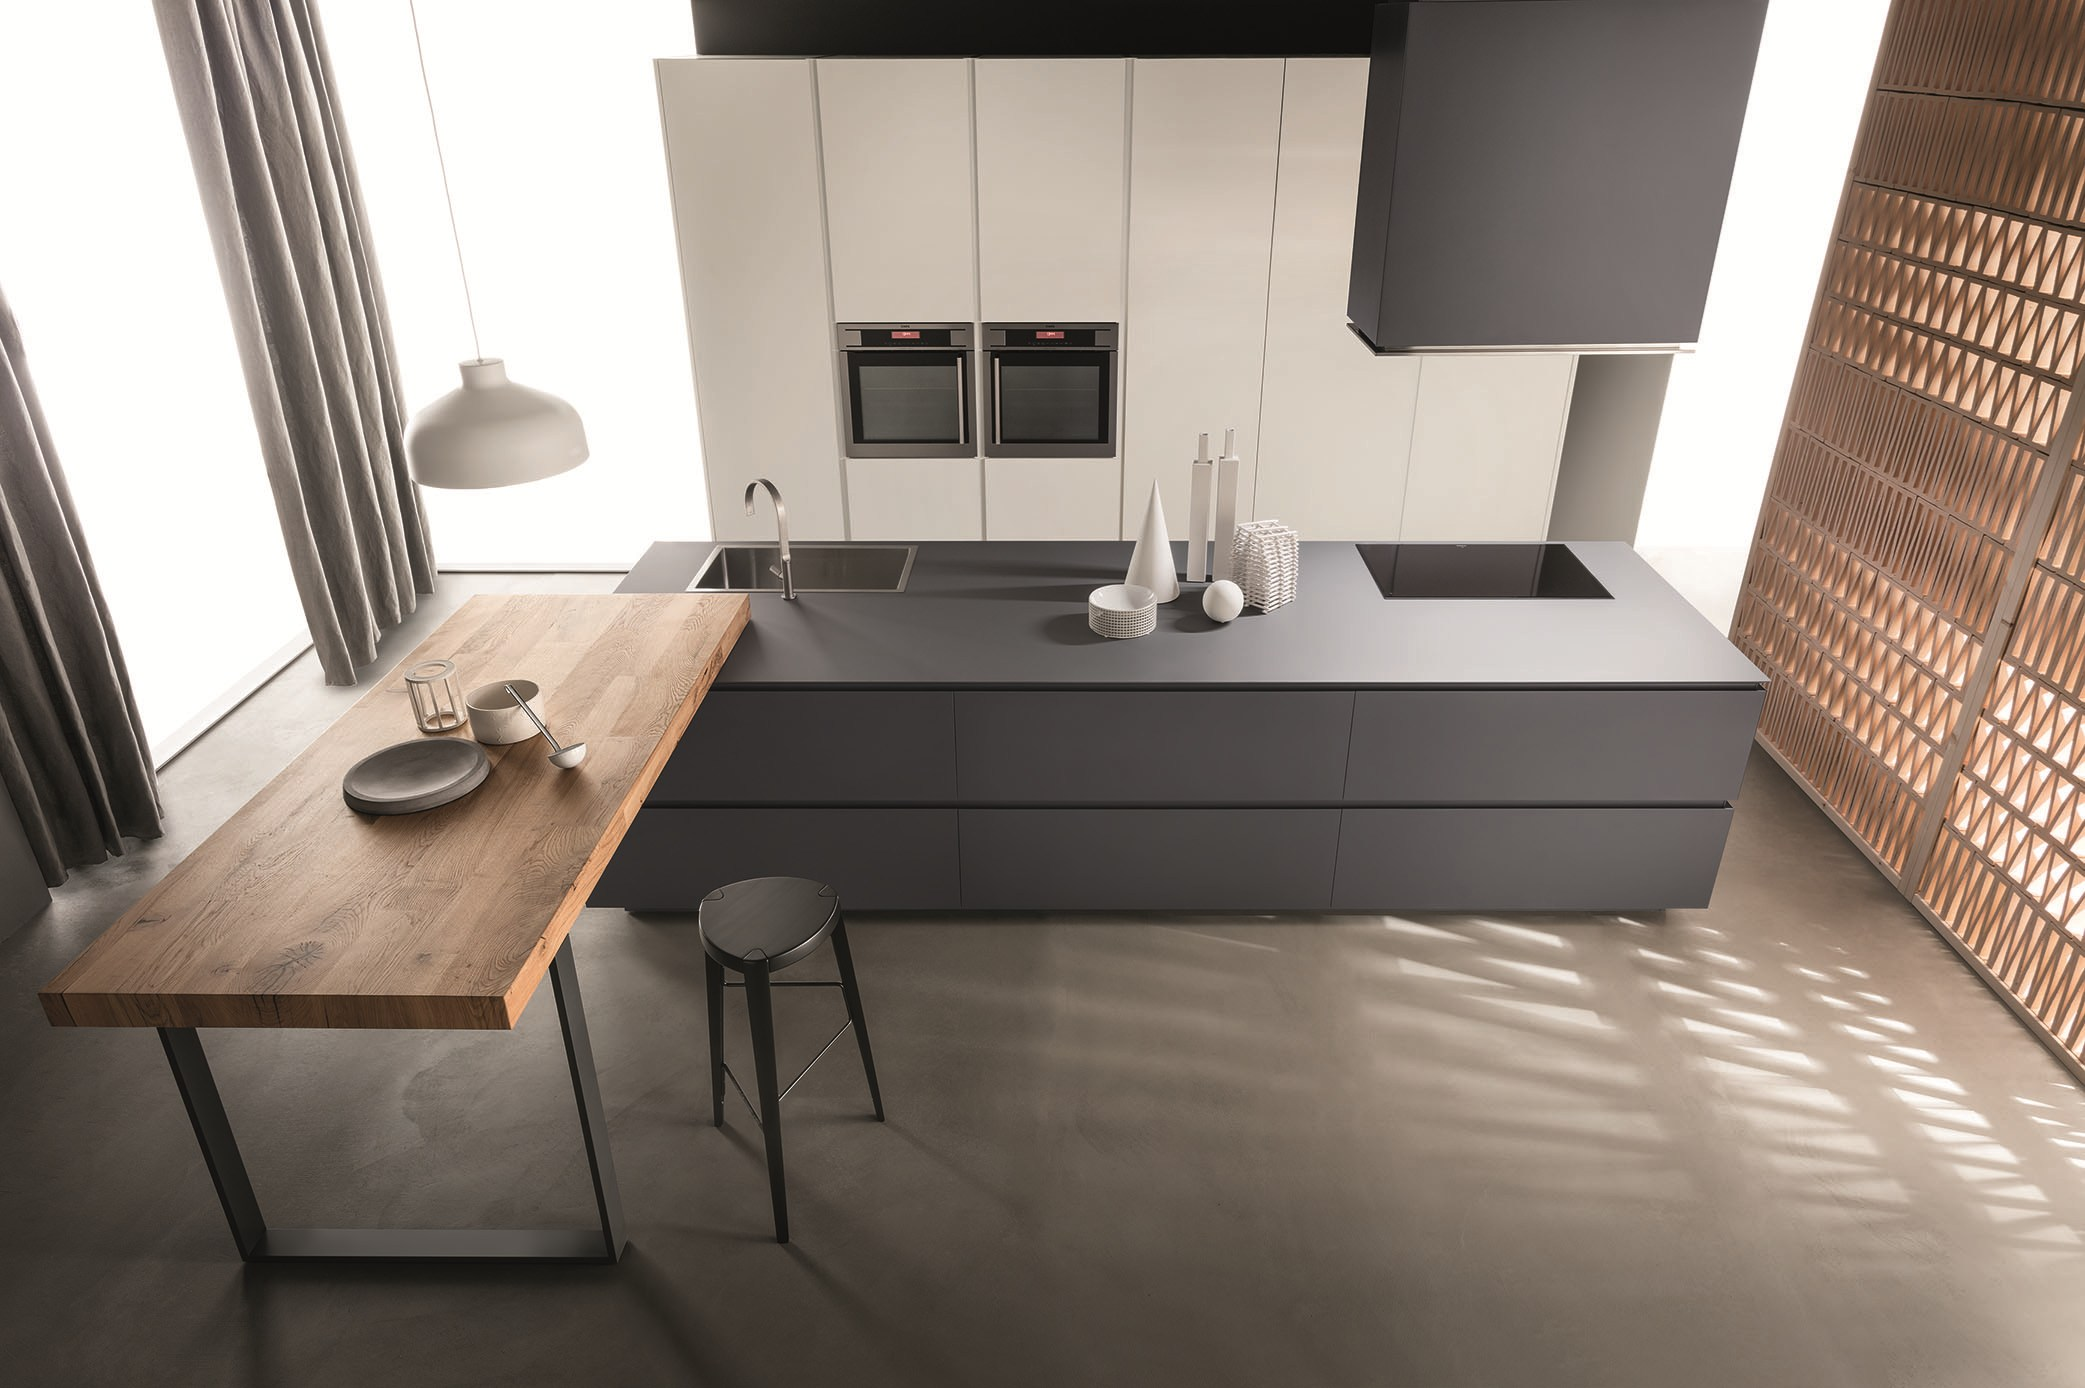 Kitchen obliqua by ernestomeda design r d ernestomeda - Ernesto mera ...